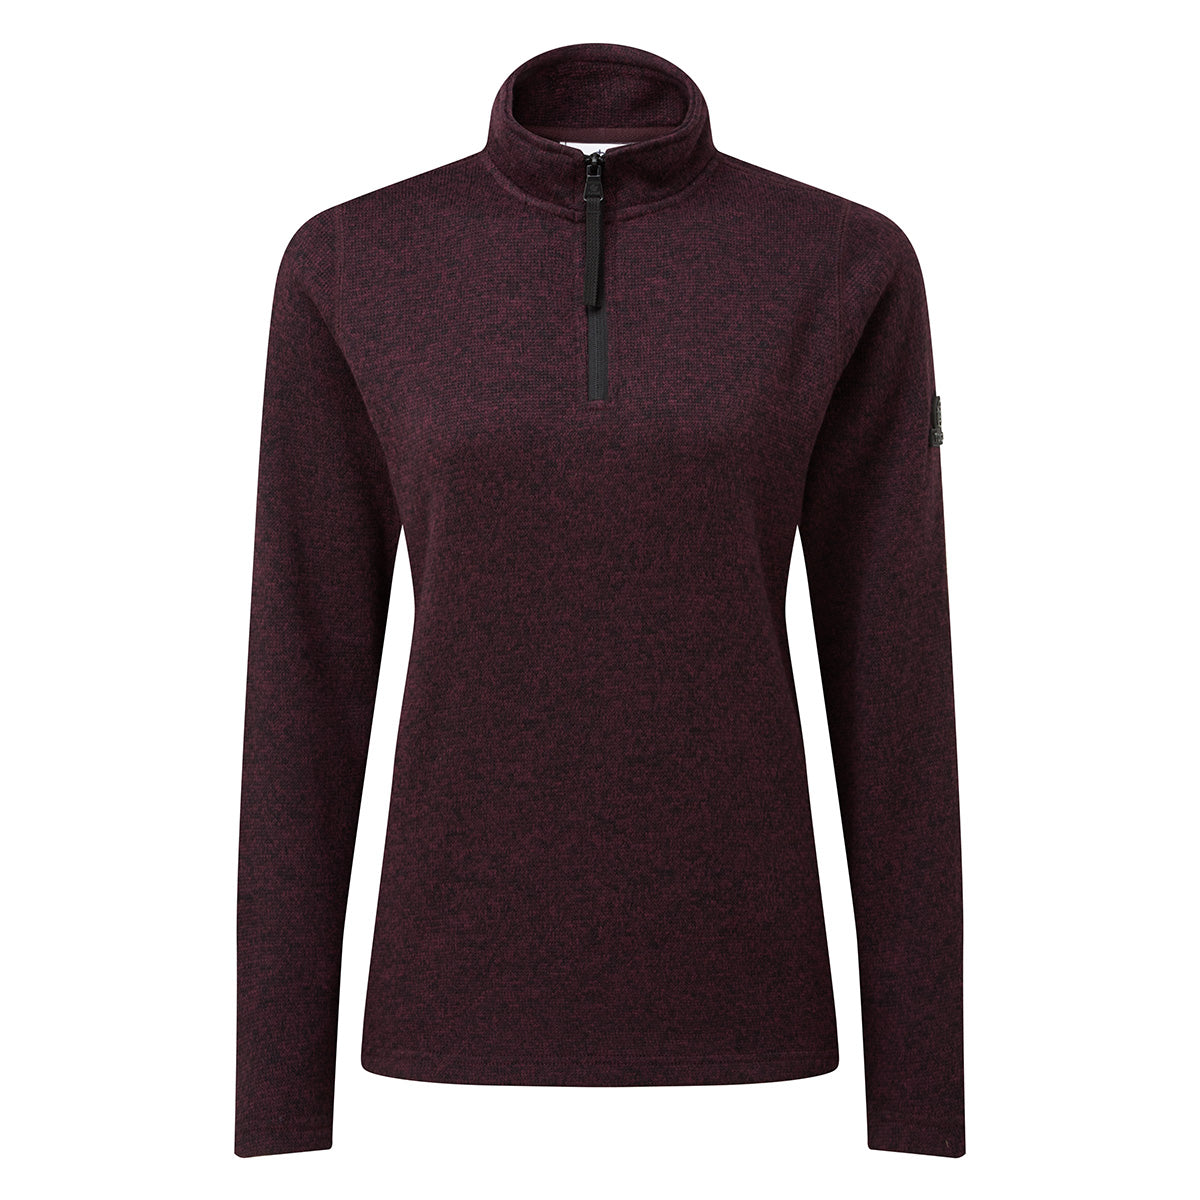 Monza Womens Knitlook Fleece Zip Neck - Aubergine Marl image 4